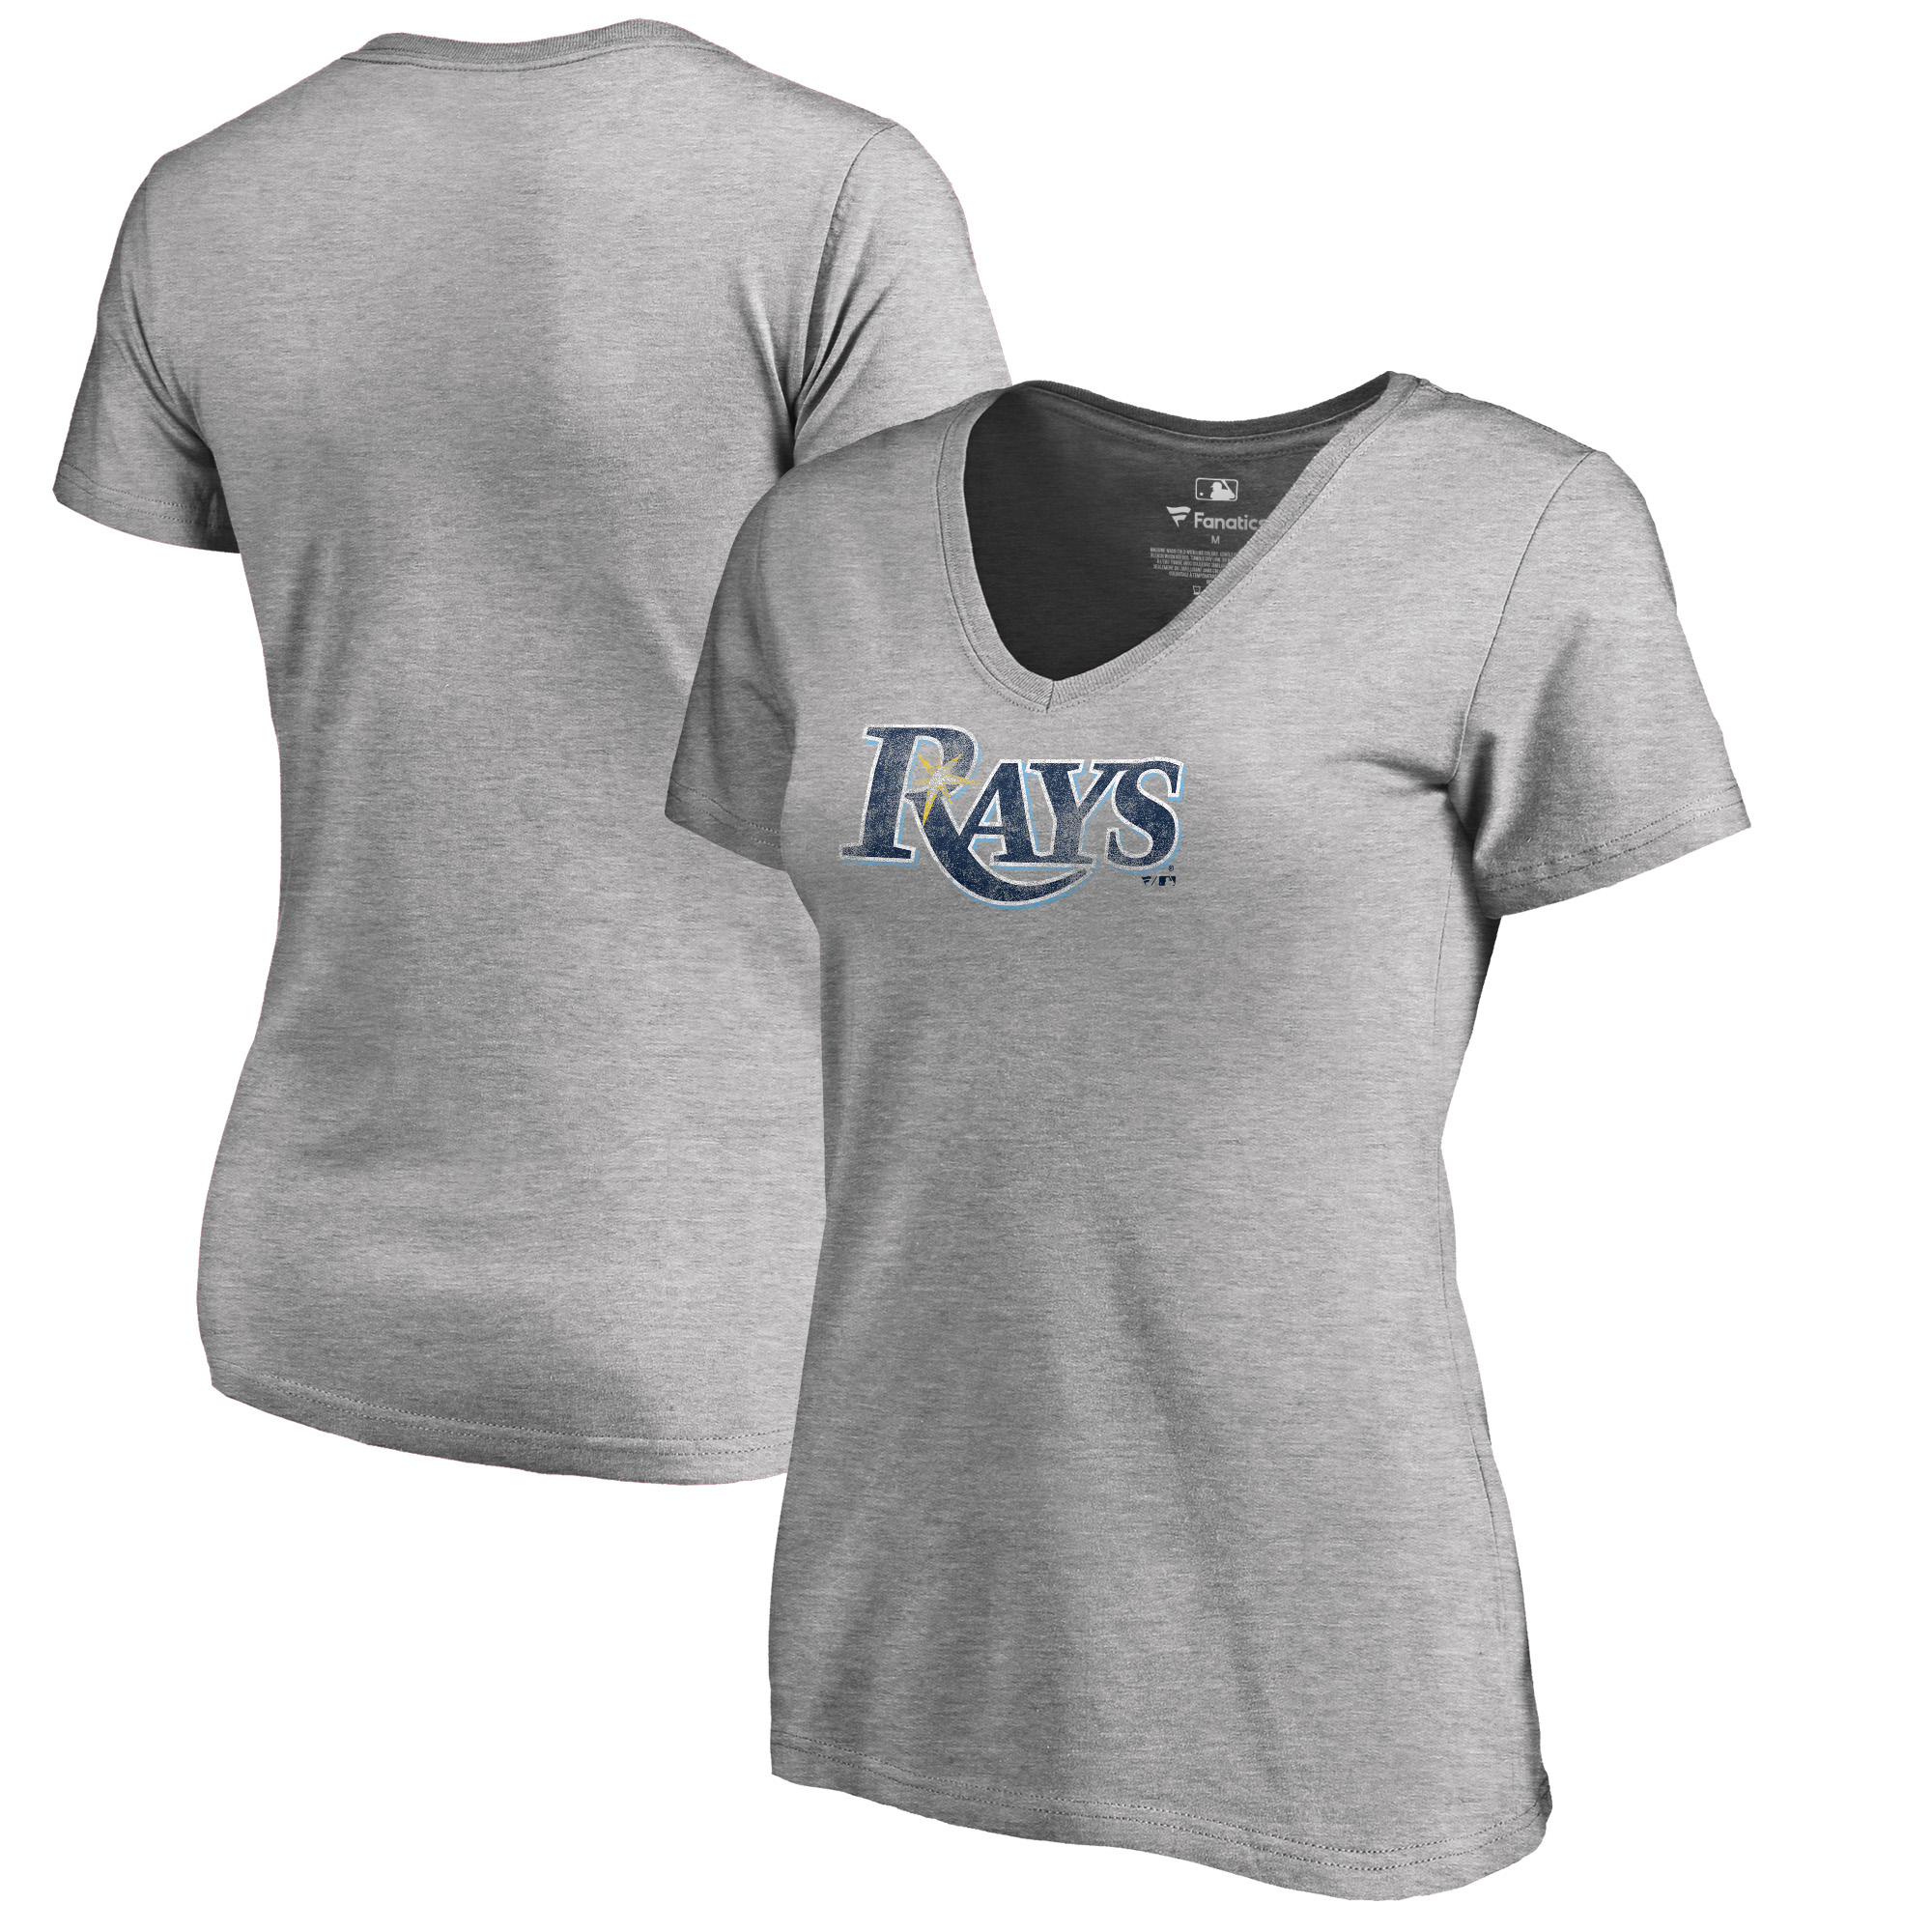 Tampa Bay Rays Fanatics Branded Women's Plus Size Distressed Team V-Neck T-Shirt - Heathered Gray